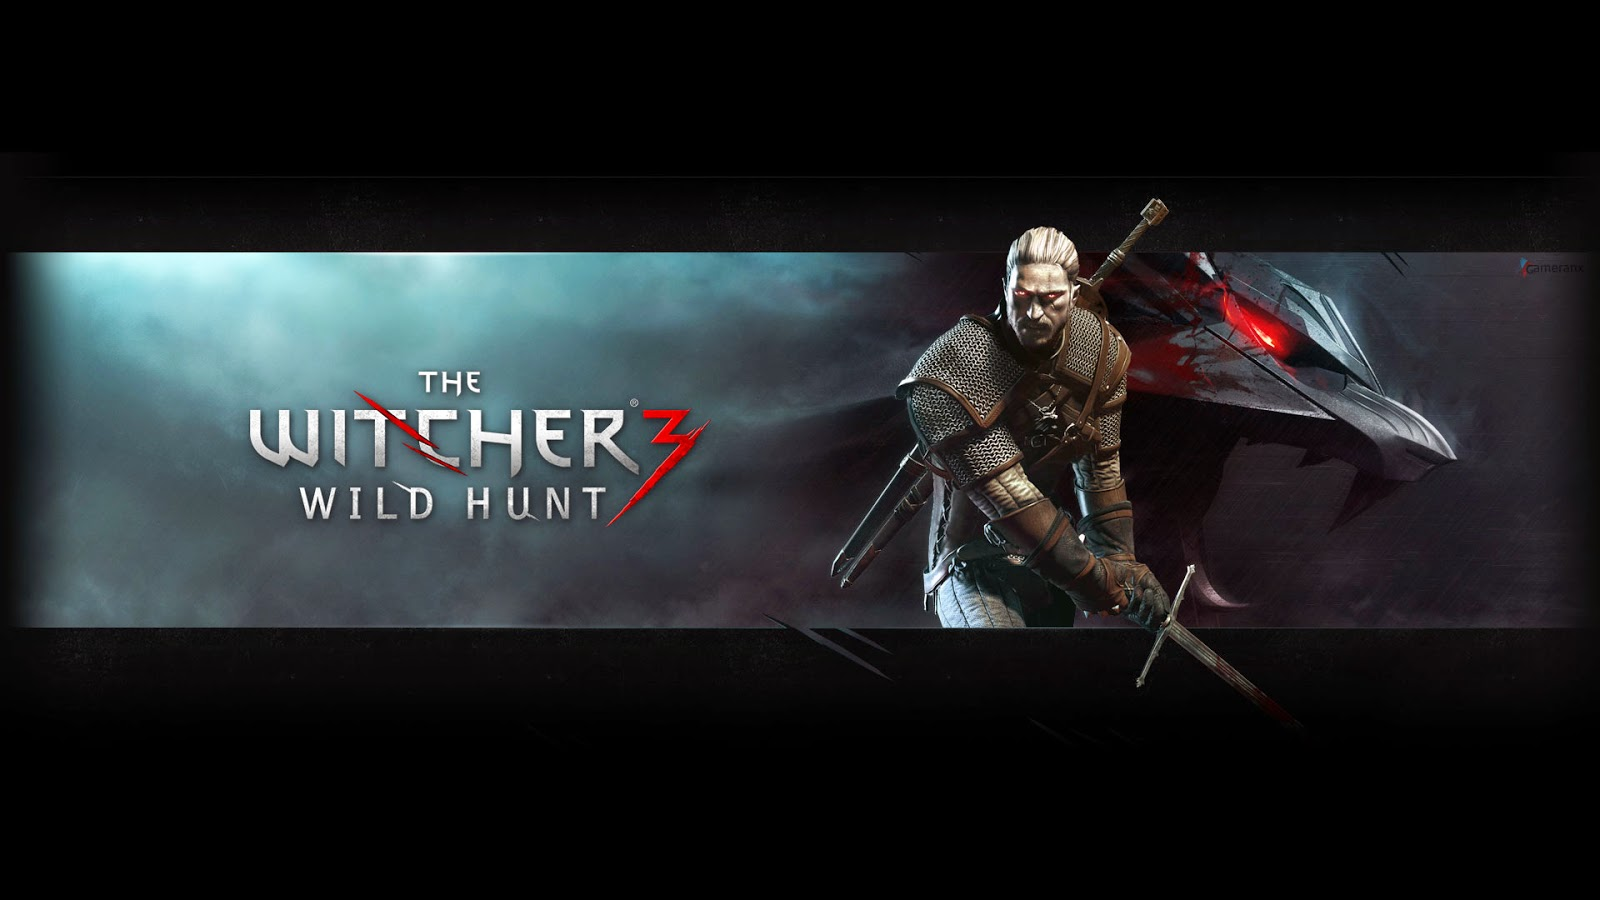 Imágen del videojuego The Witcher 3